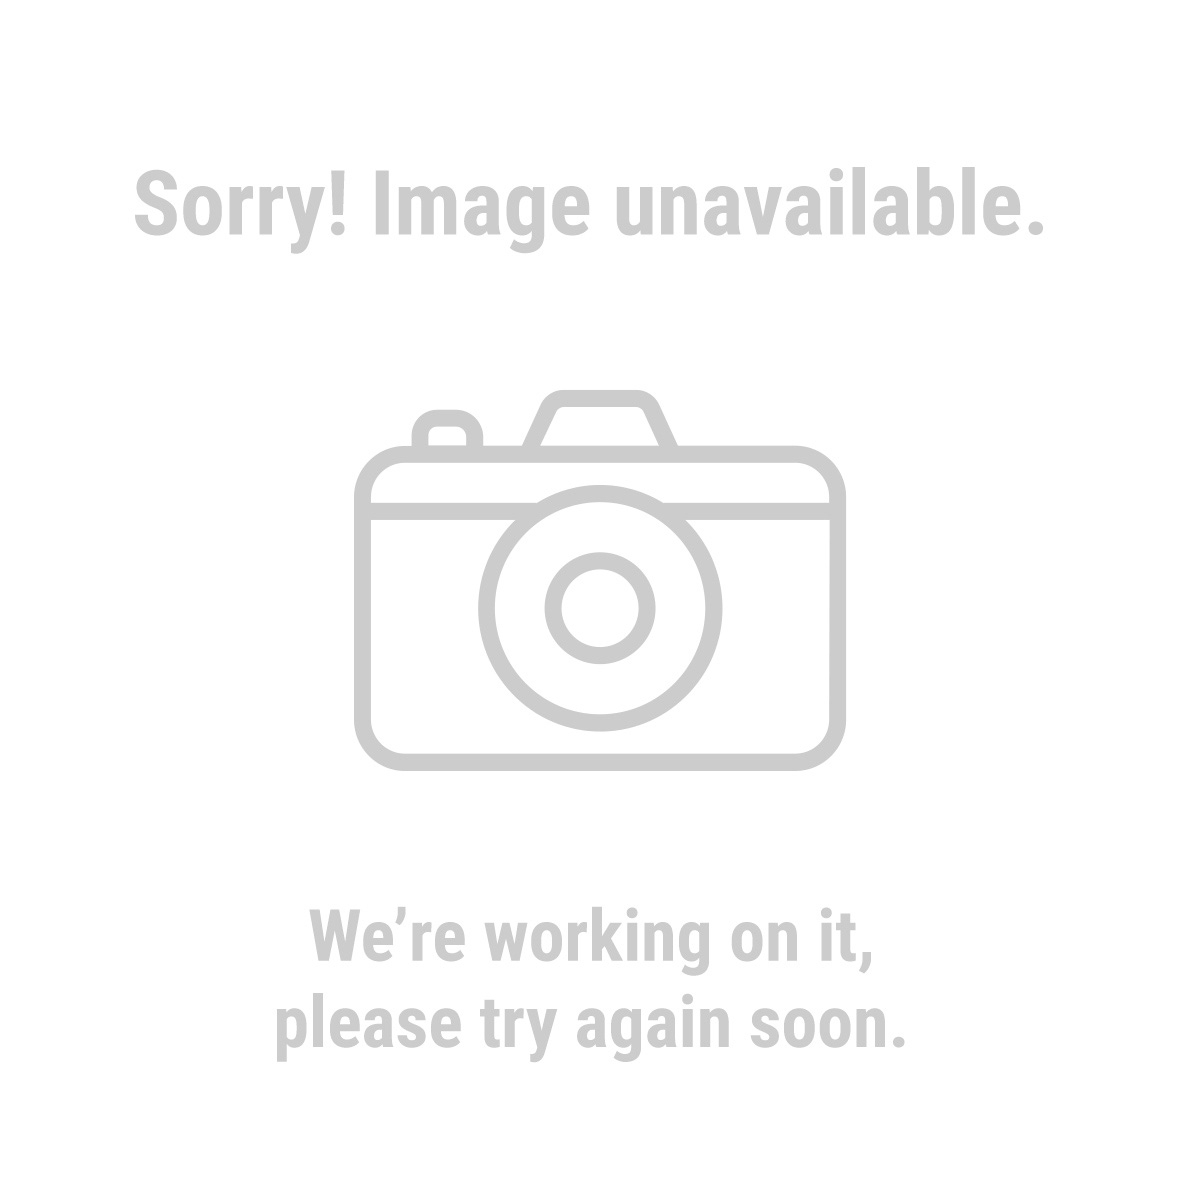 Double Saw Harbor Freight 5